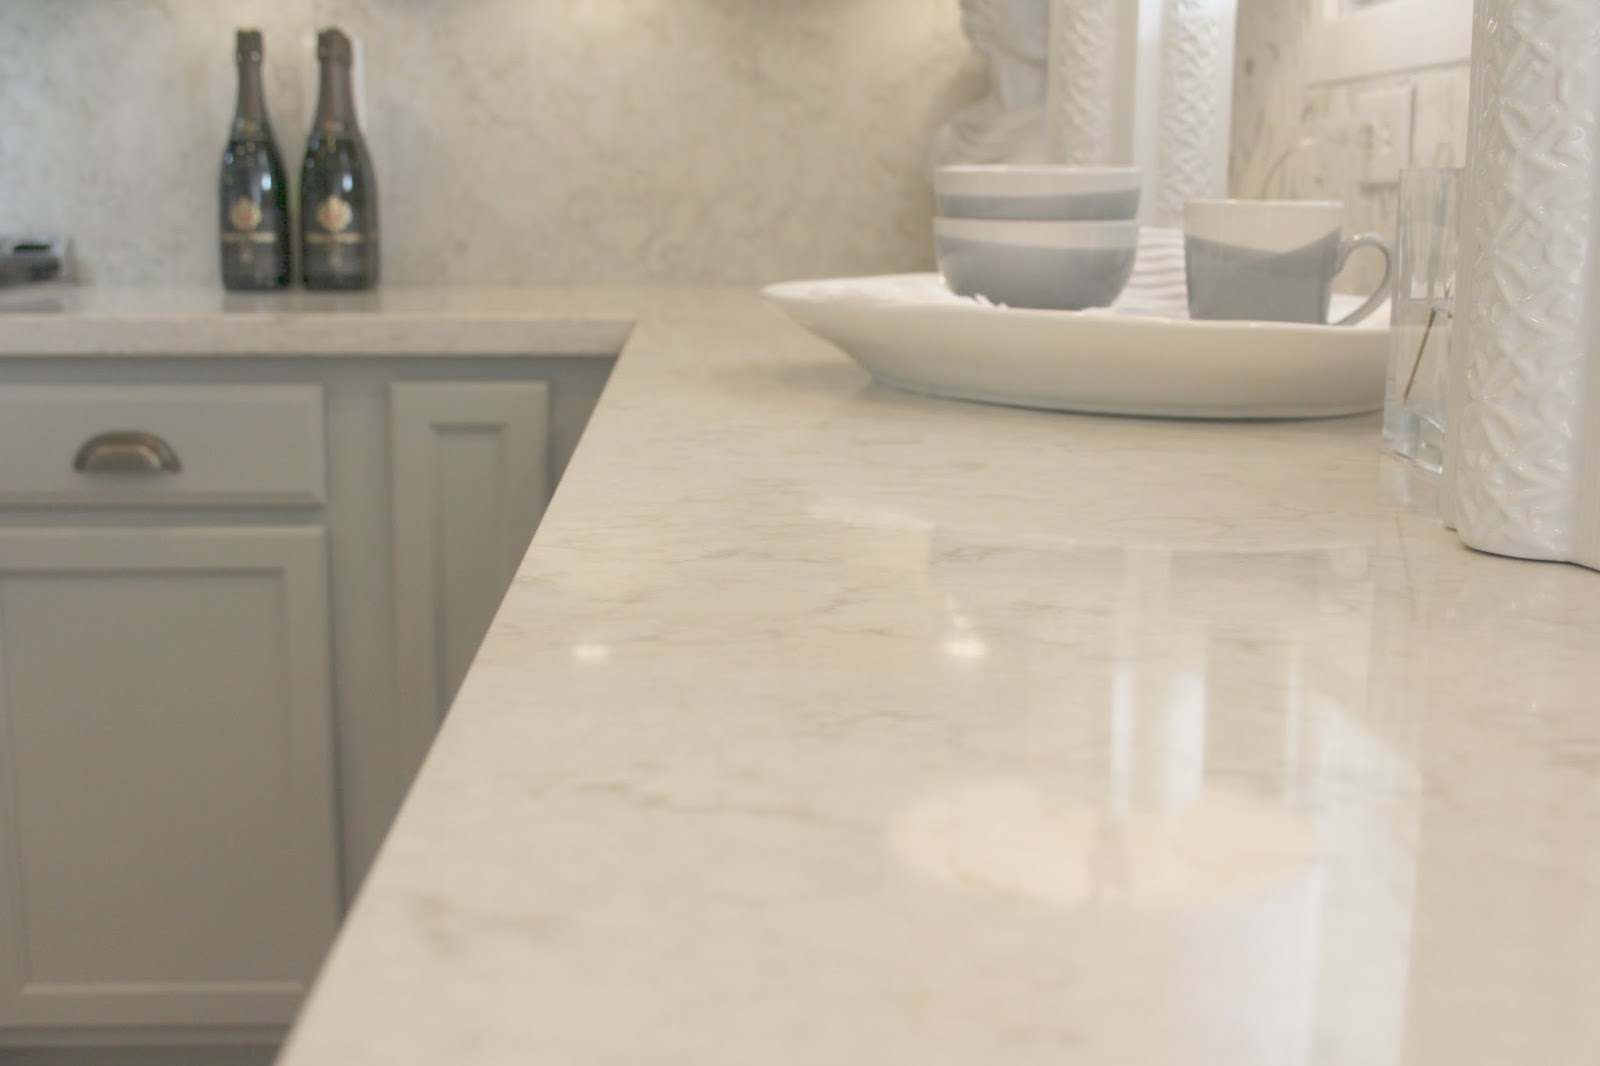 Serene modern farmhouse with Viatera Soprano quartz, Calacatta marble, and Swedish style by Hello Lovely